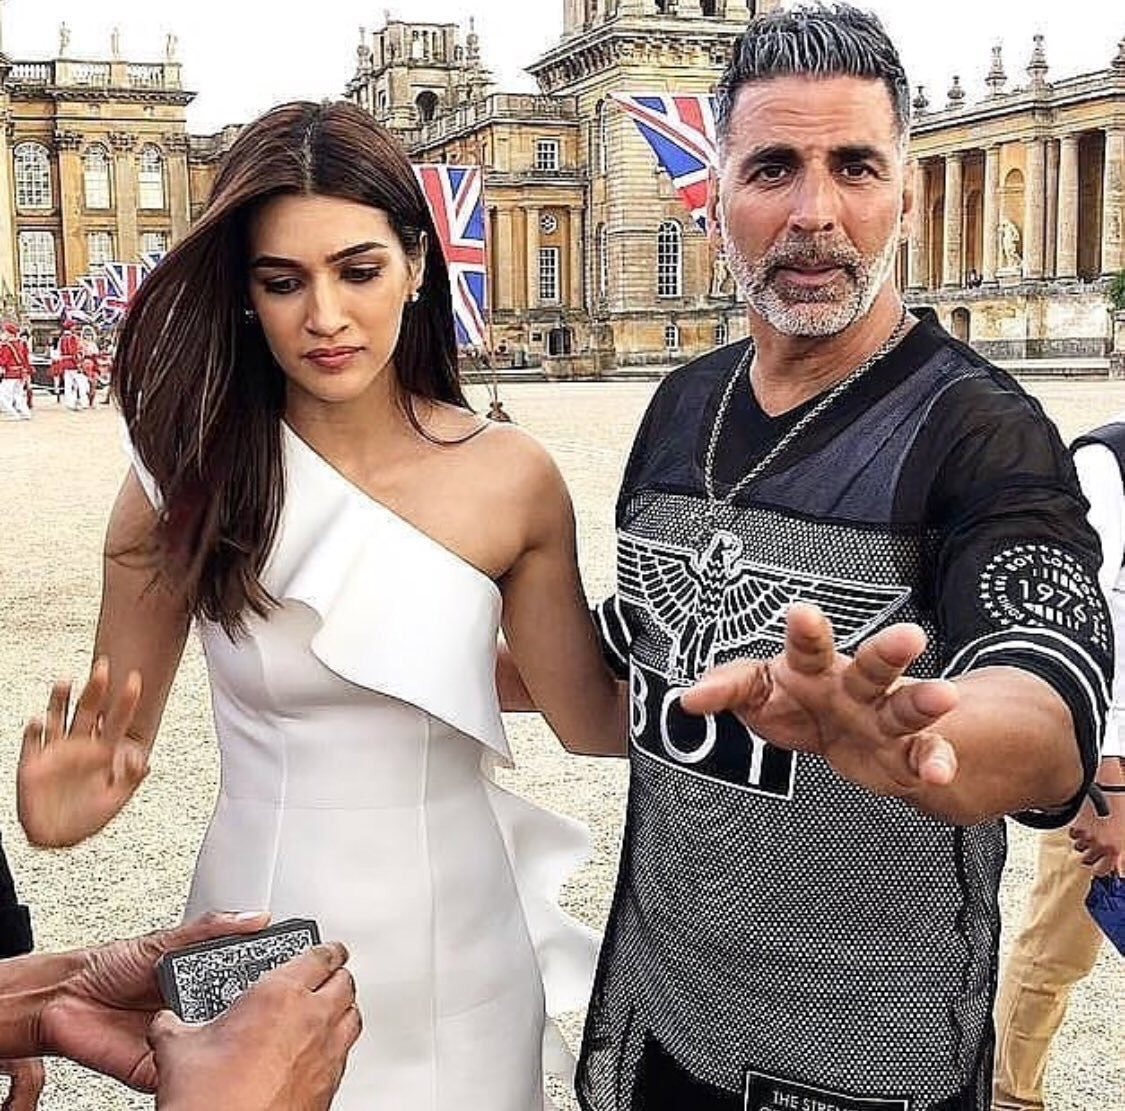 Akshay Kumar doesn't have ego issues nor does he behave like a senior: Kriti Sanon on her Housefull 4 co star.If there is one star in Bollywood who has managed to entertain audiences with a variety of films in a year, it is none other than Akshay Kumar.  WE WANT HOUSEFULL4 POSTER <br>http://pic.twitter.com/HtZmFIOvX0